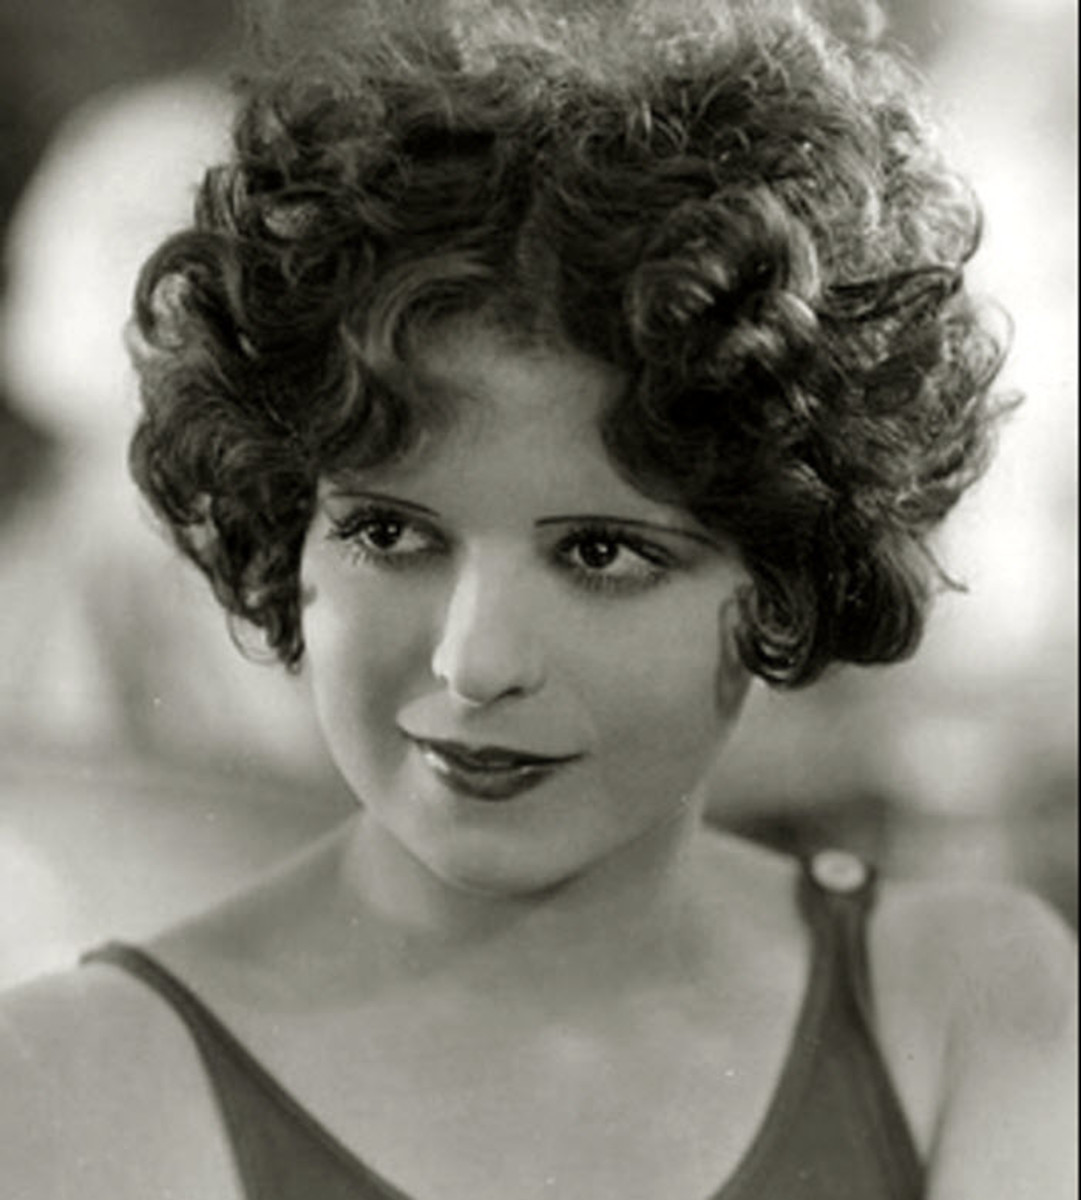 Clara Bow - The It Girl